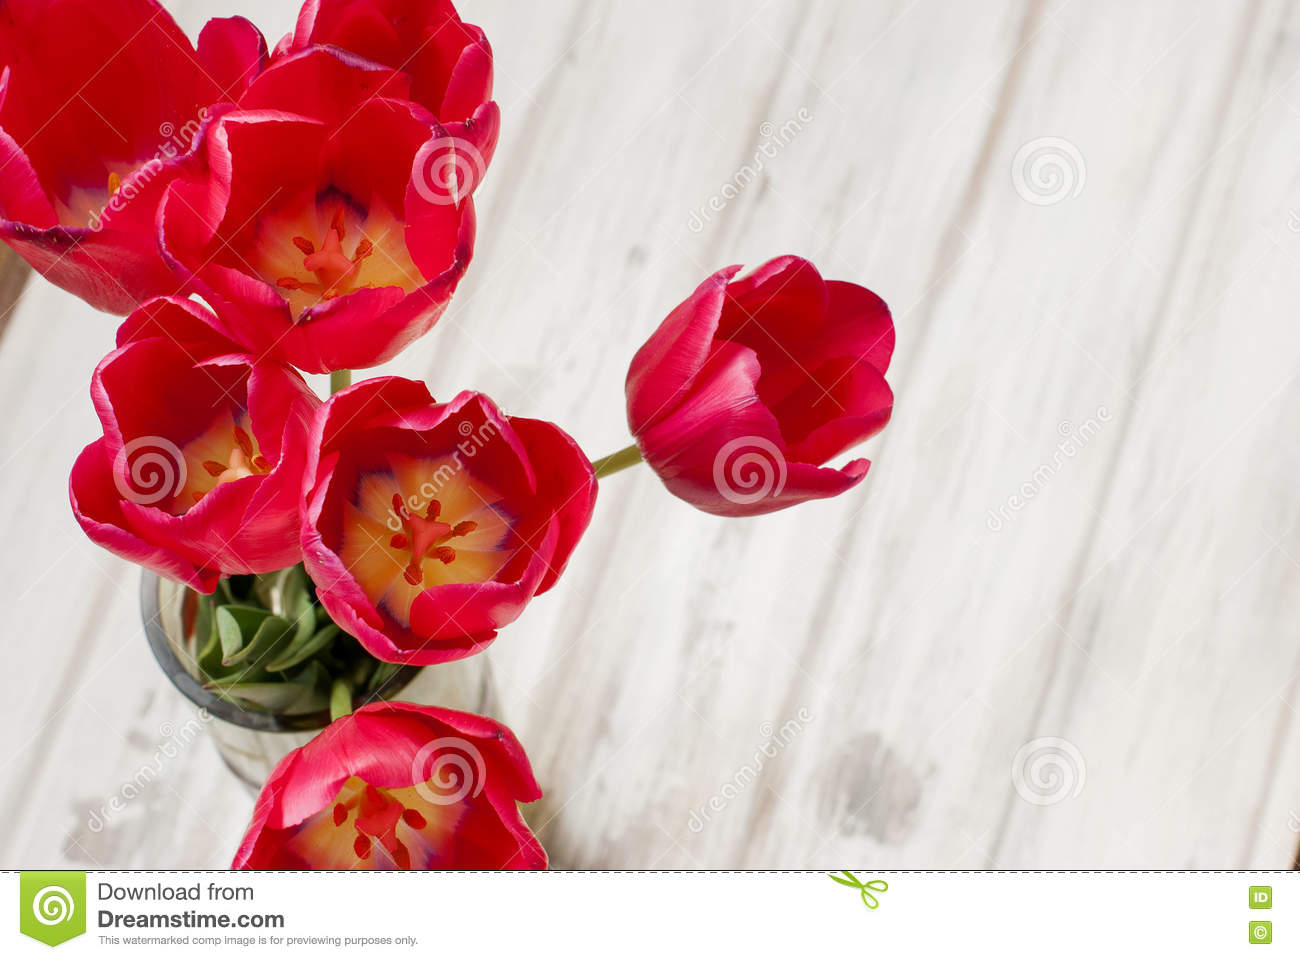 Spring flowers red tulips ina vase